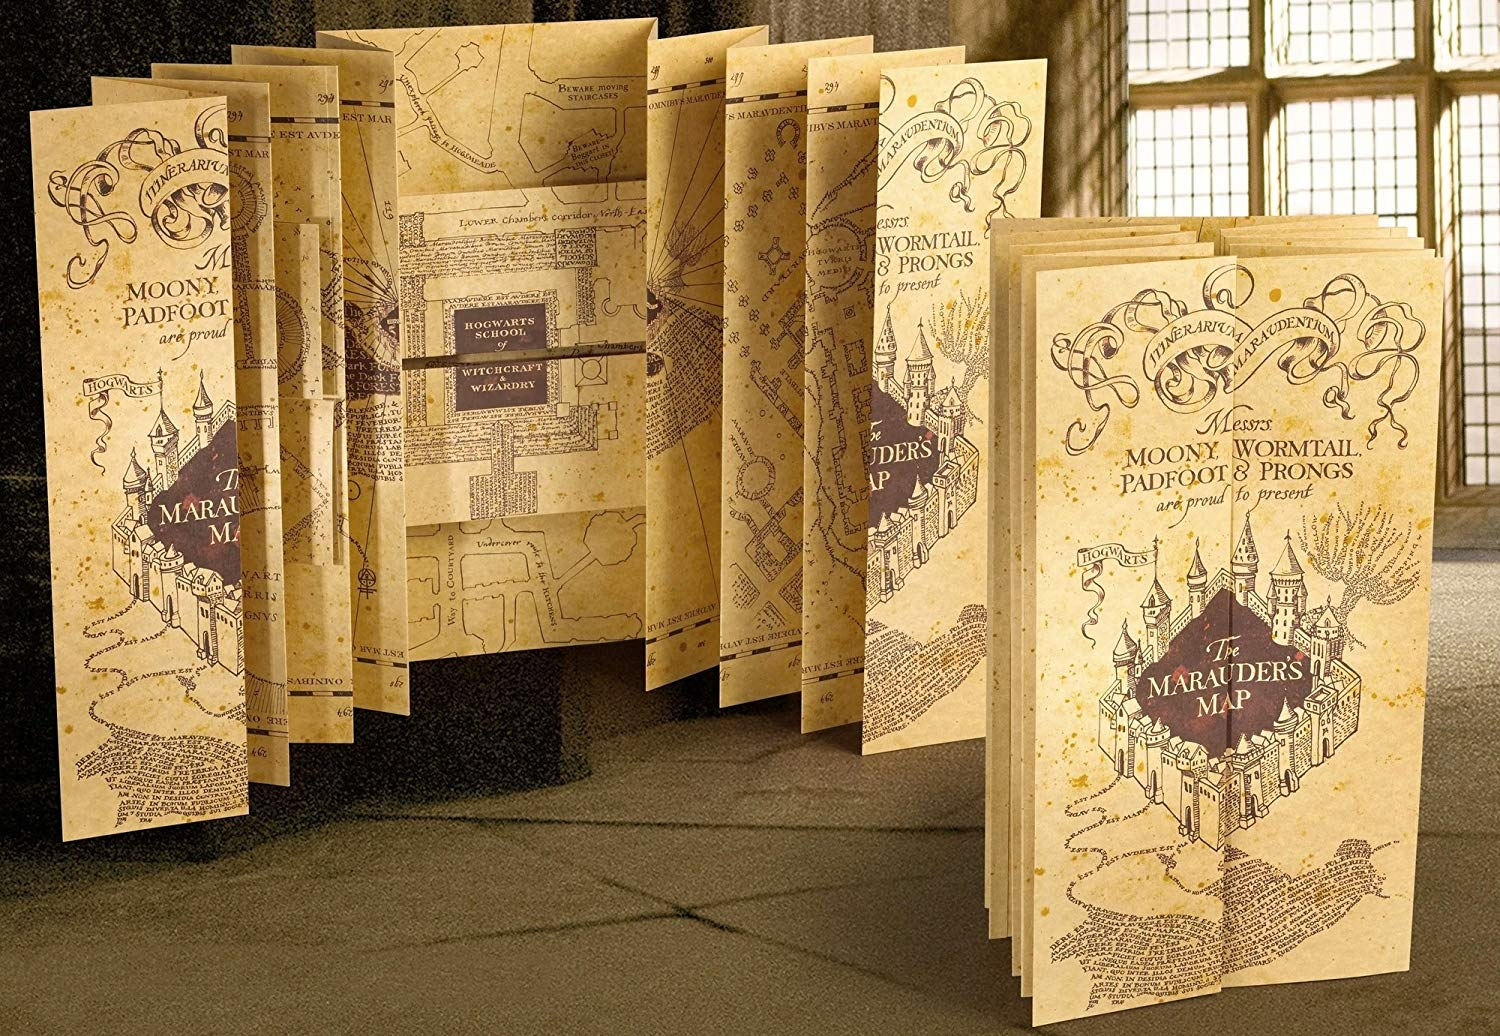 Harry Potter Marauders Map on resident evil map, cancer map, rocky map, tv map, star fleet universe map, lord of the rings map, anime map, disney map, sherlock holmes map, diagon alley map, mauraders map, wizard of oz map, mario map, matrix map, marauder's map, cars map, marvel universe map, alice in wonderland map, middle-earth map, narnia map,